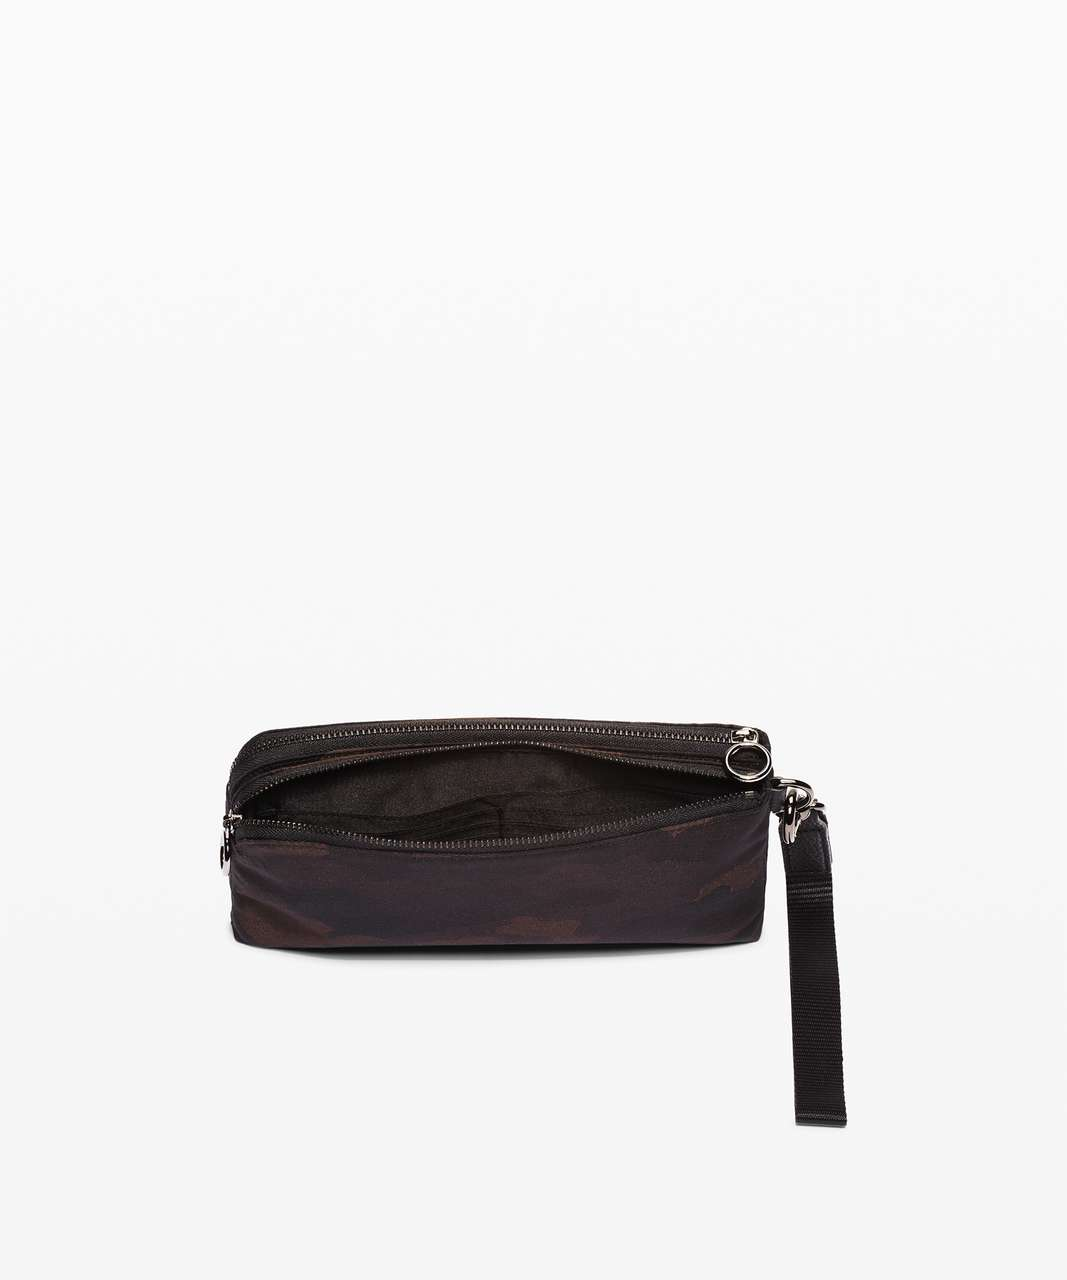 Lululemon Now and Always Pouch - Heritage Camo Jacquard Max Brown Earth Black / Black